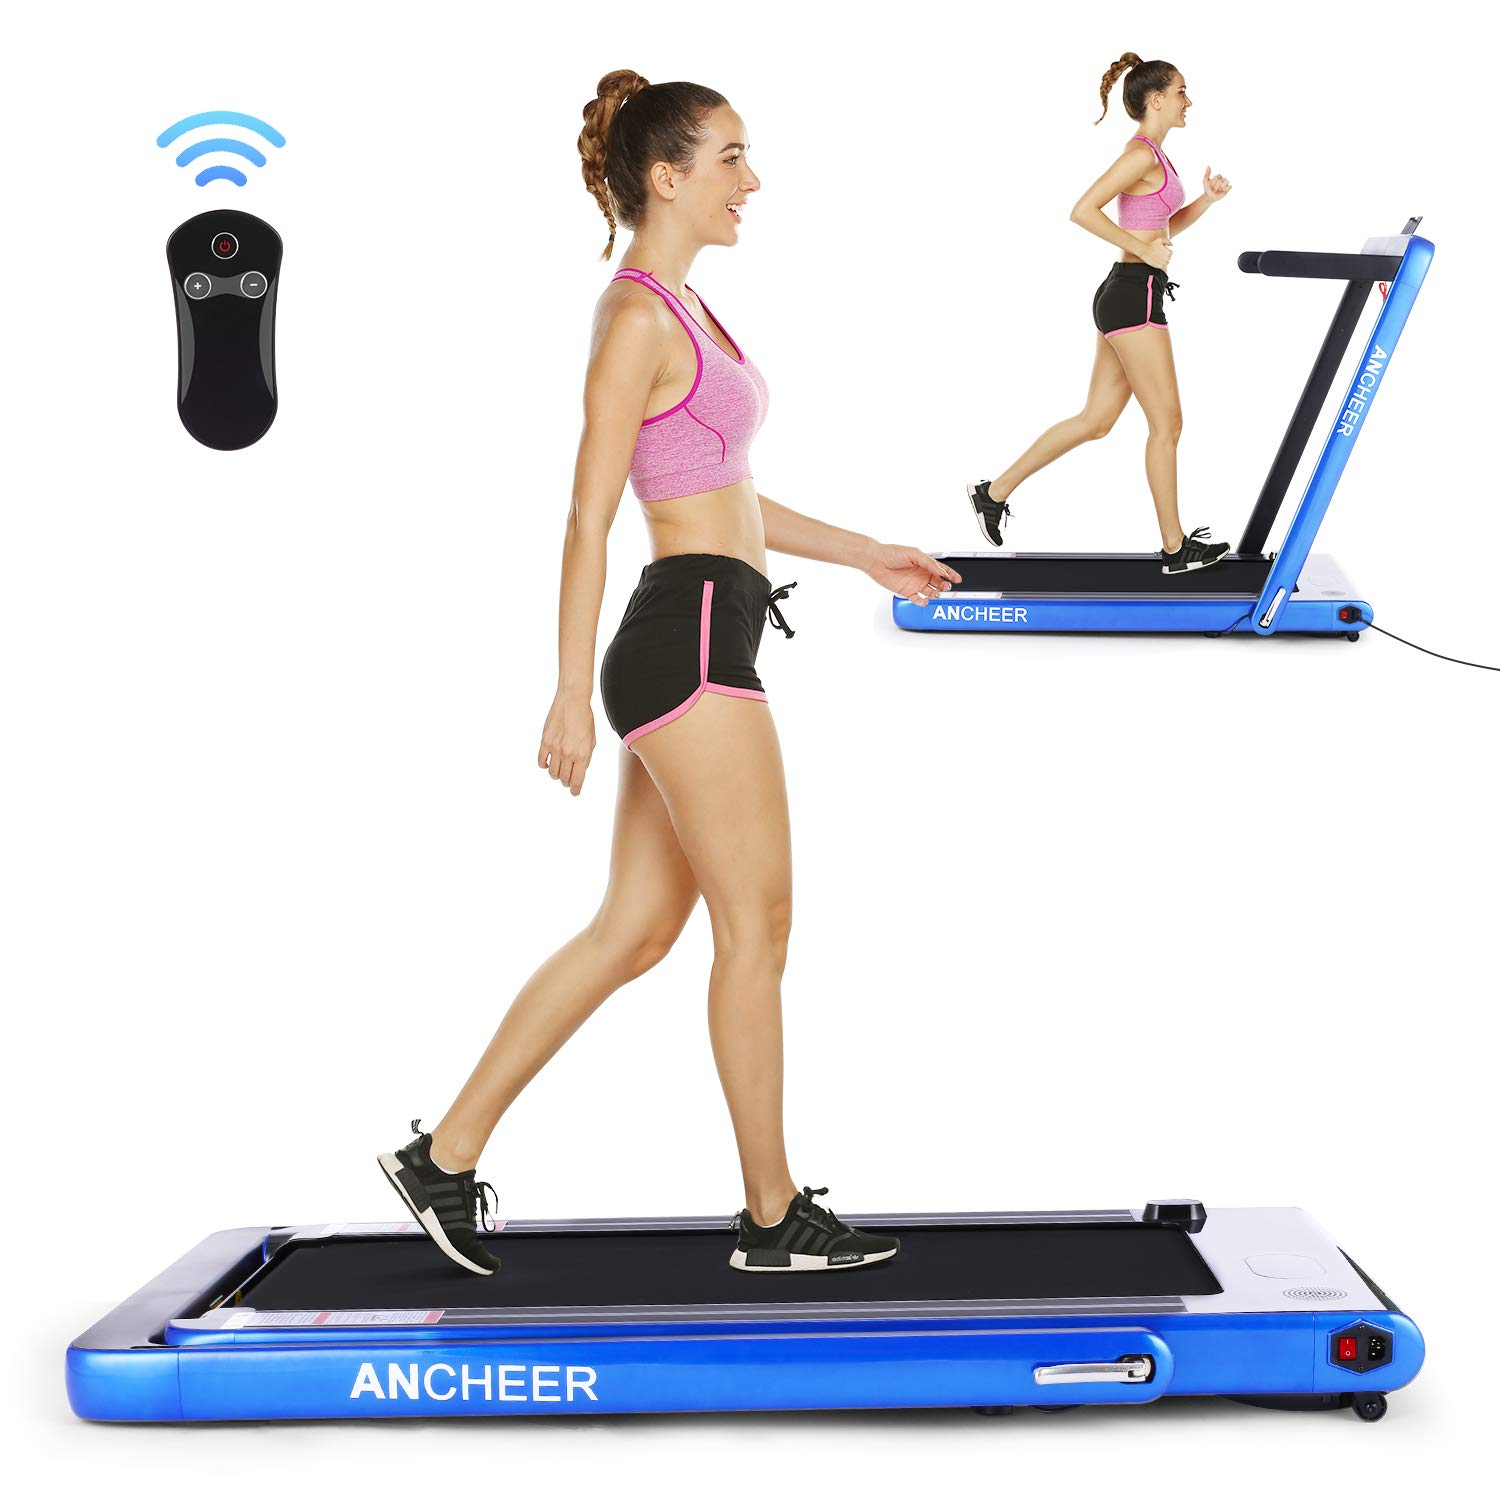 ANCHEER Folding Treadmill, Under Desk Smart Electric Treadmill with Remote Control and Bluetooth Speaker & LCD Monitor, 2 in 1 Walking Running Machine Trainer Equipment for Home Gym (Dark Blue) by ANCHEER